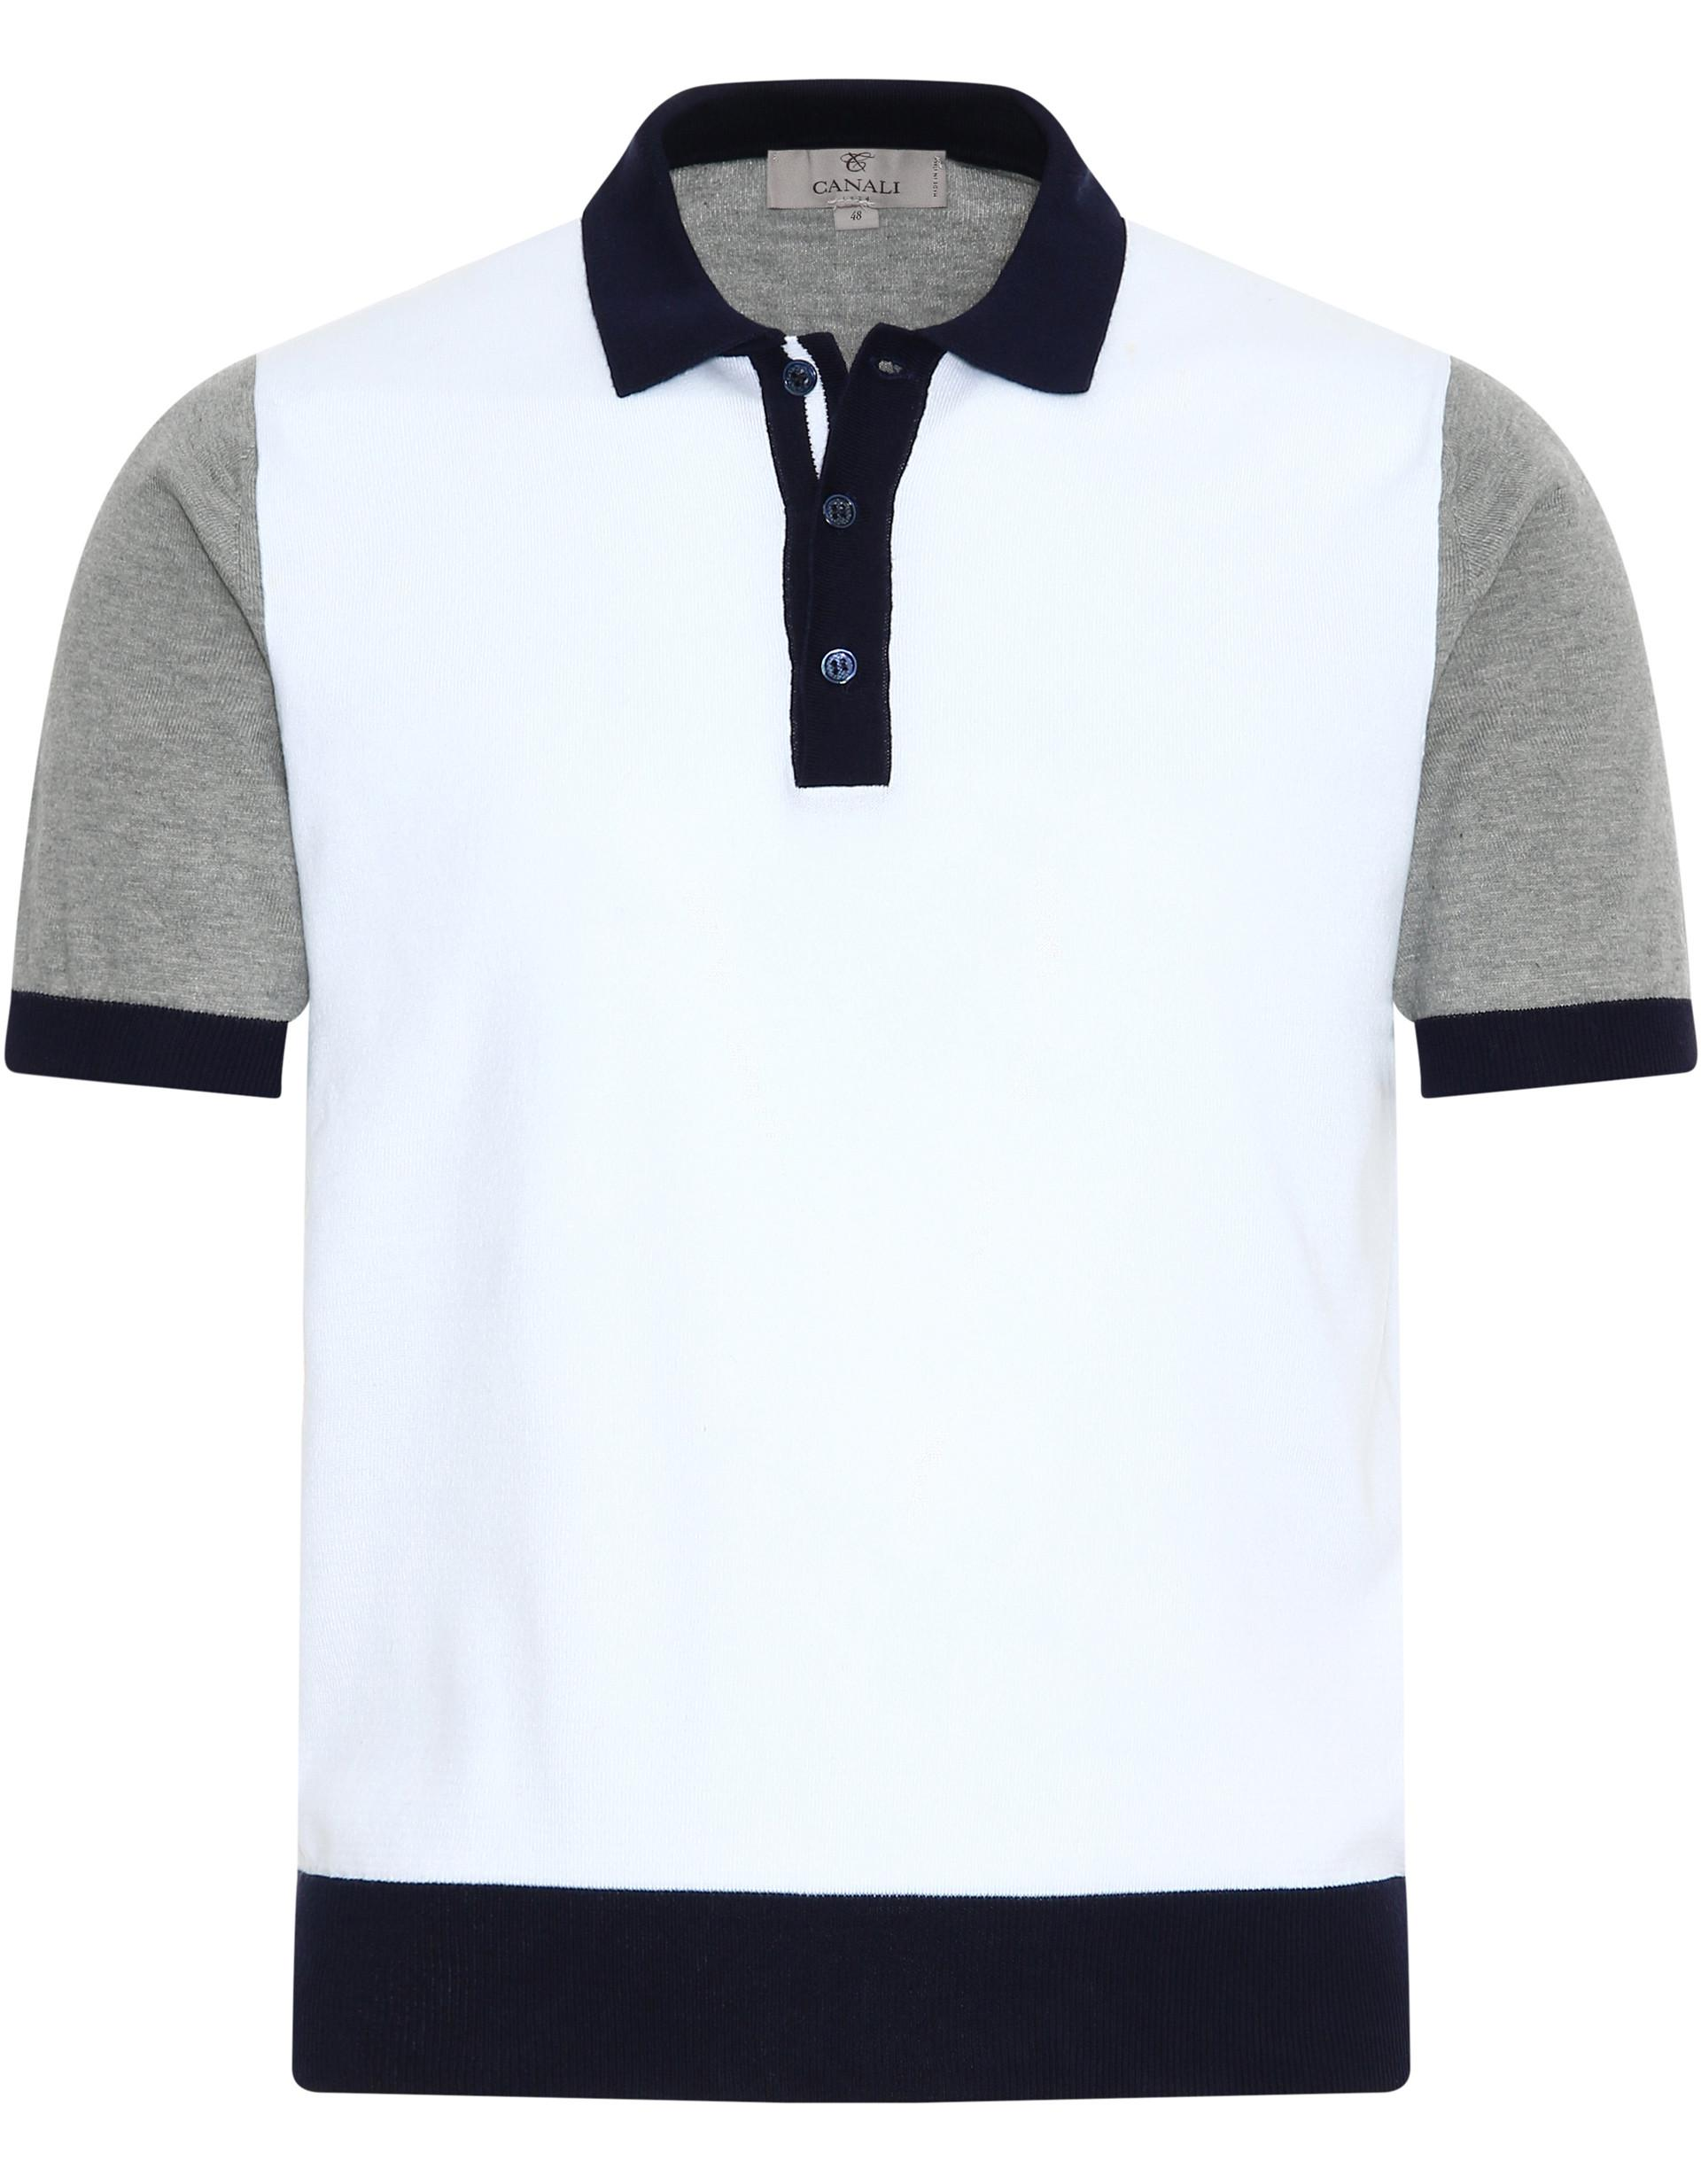 66705b8c045 Lyst - Canali White Polished Cotton Polo Shirt in White for Men